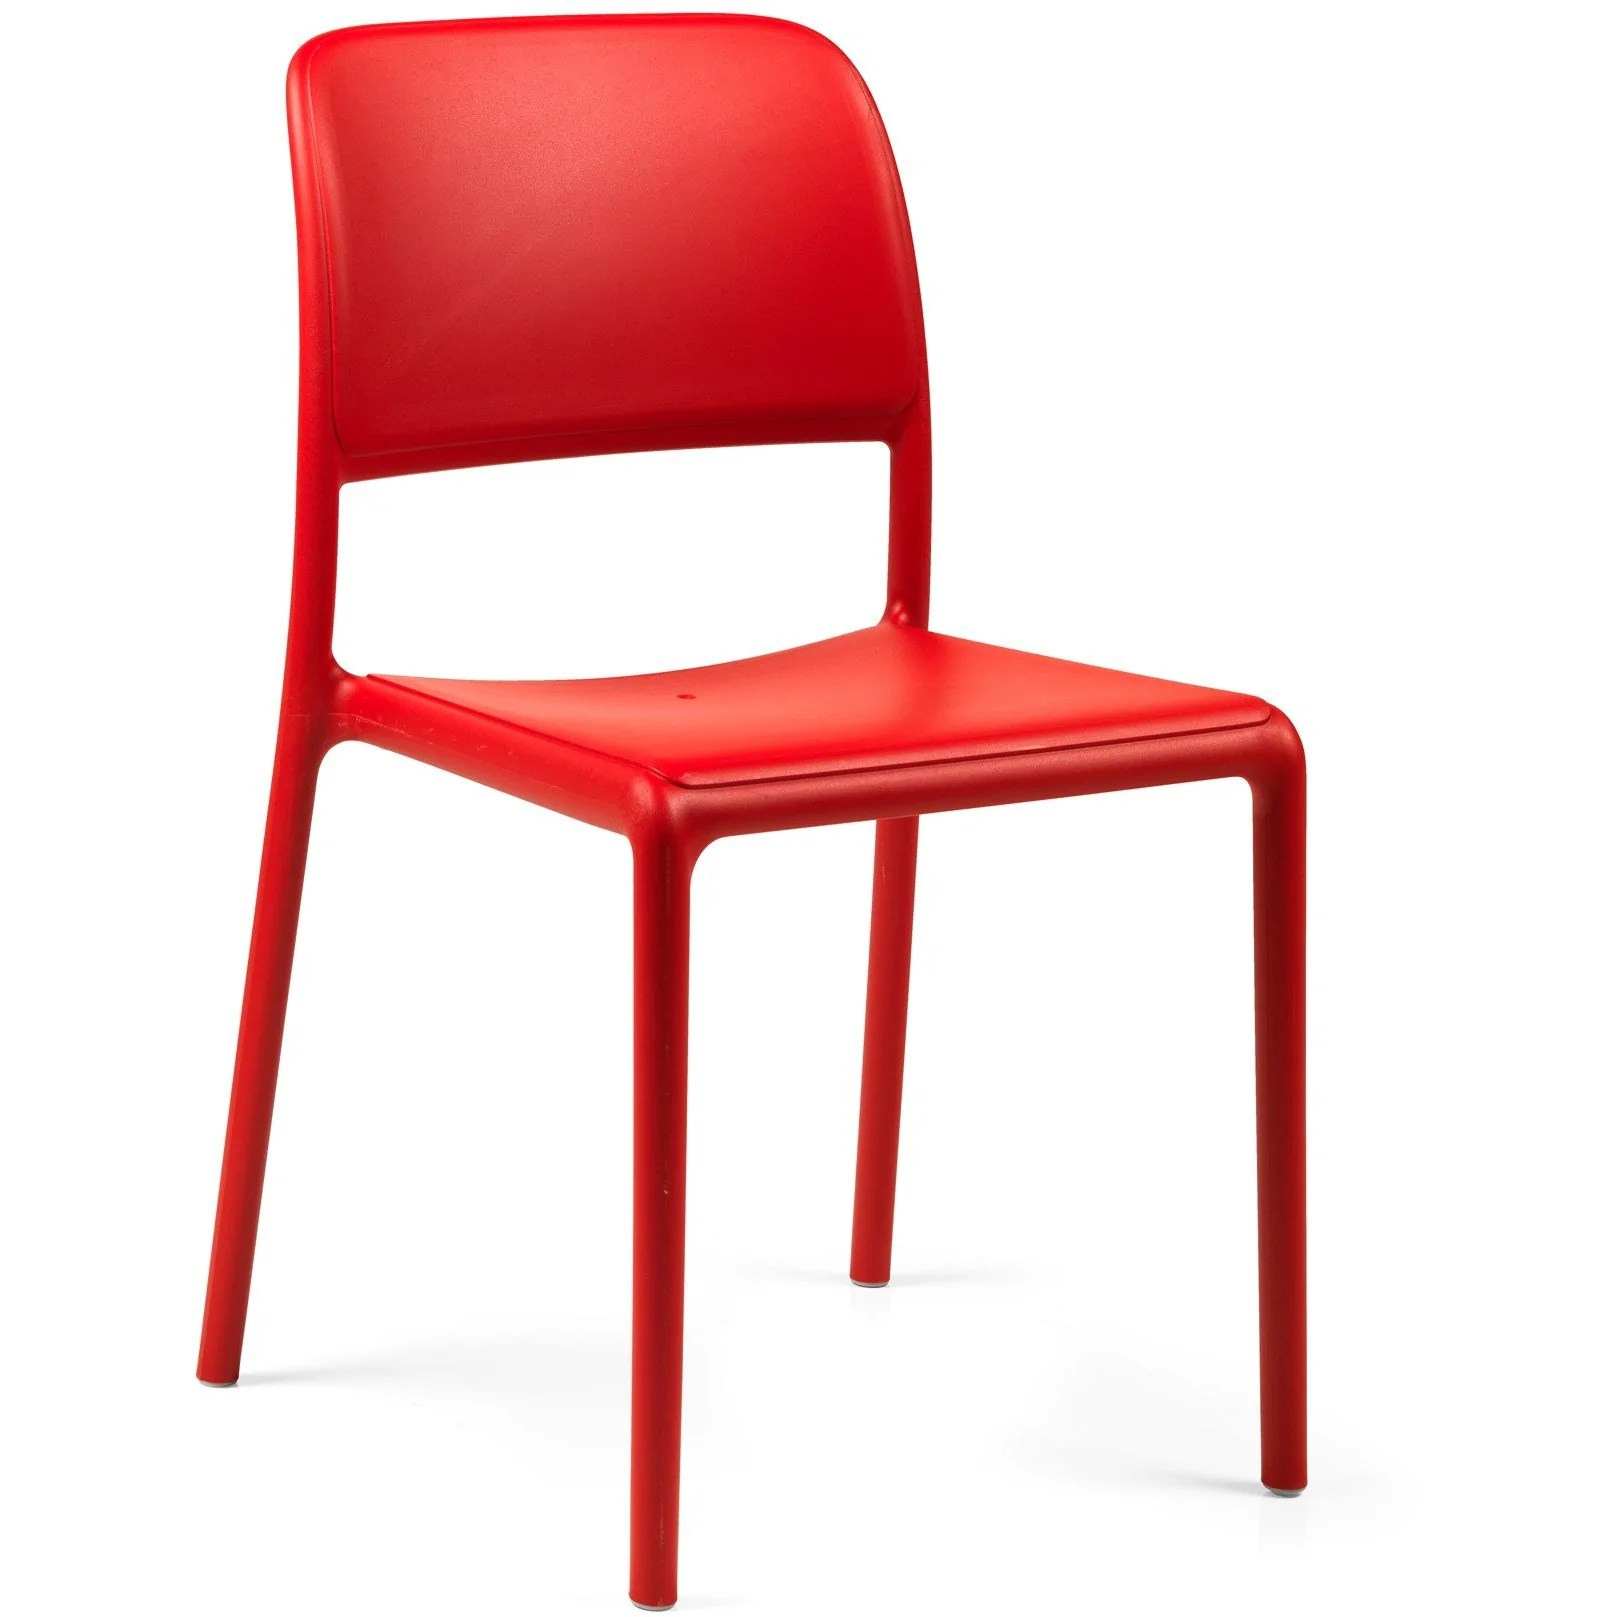 Kettler Riva Riva Bistrot Chair Better Buy Chairs